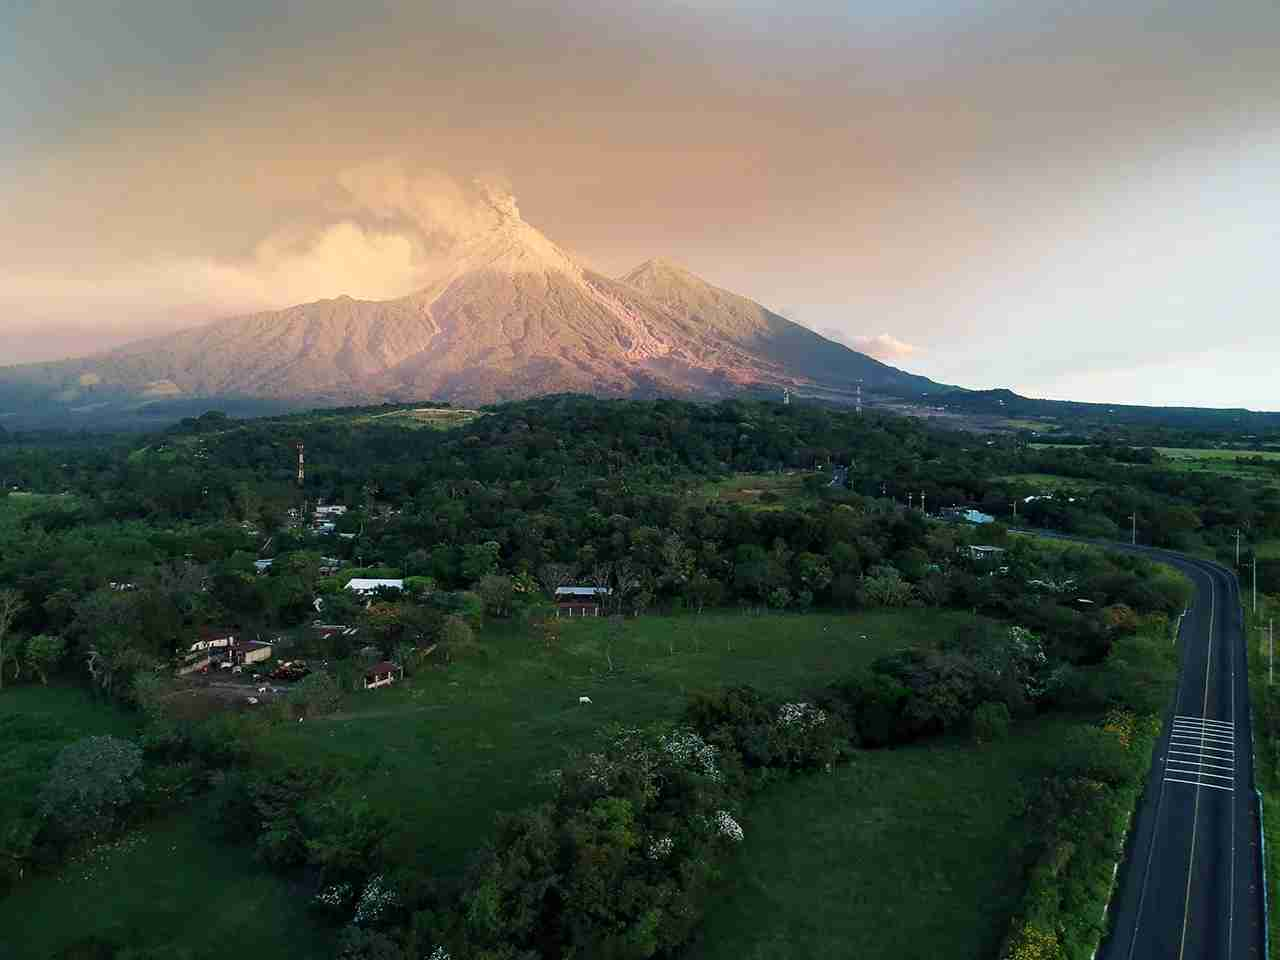 TOPSHOT - A view of the Fuego Volcano erupting, as seen from Escuintla, Guatemala on November 19, 2018. - Guatemalan authorities on Monday declared a red alert after the Fuego volcano erupted again, forcing almost 3,000 residents to flee. (Photo by CARLOS ALONZO / AFP) (Photo credit should read CARLOS ALONZO/AFP/Getty Images)